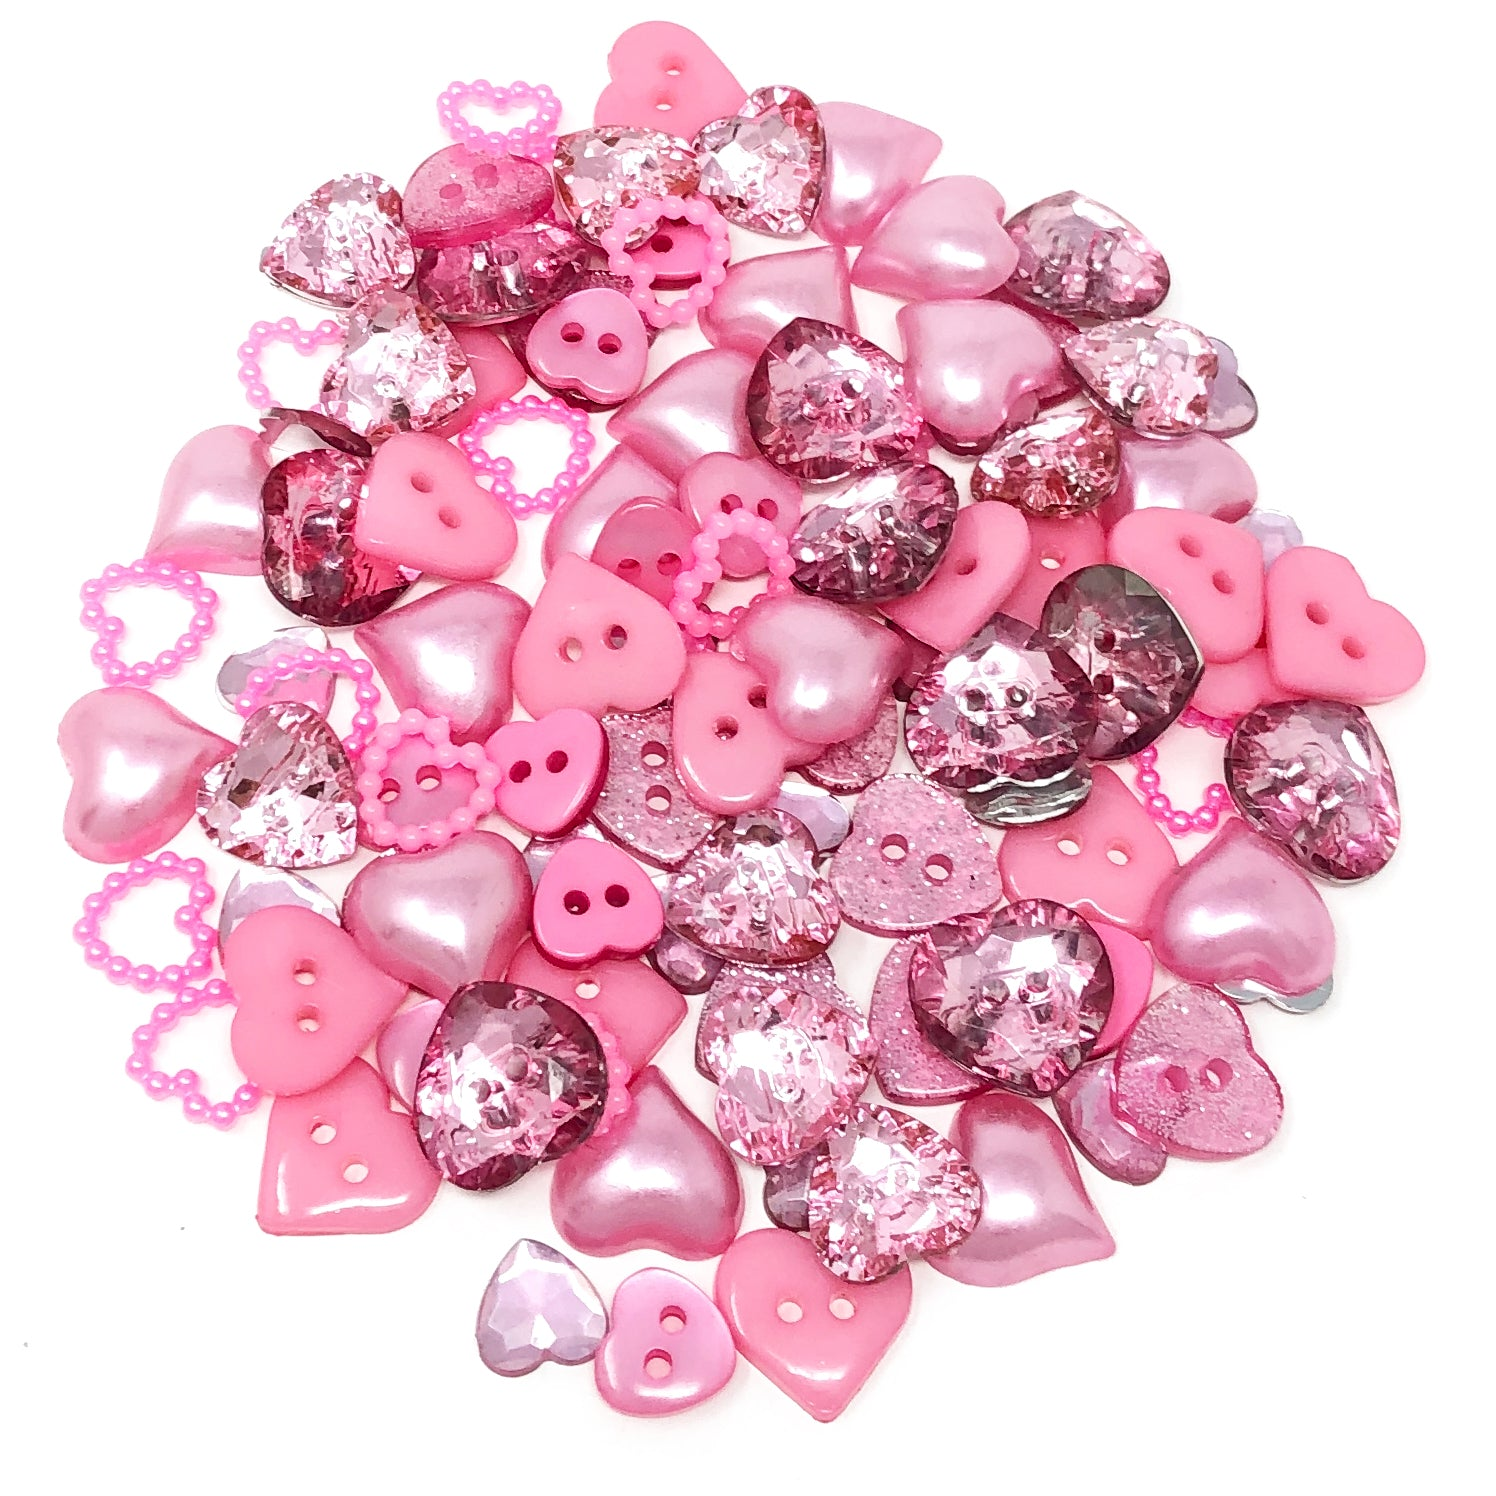 100 Mix Heart Acrylic & Resin Buttons & Flatbacks